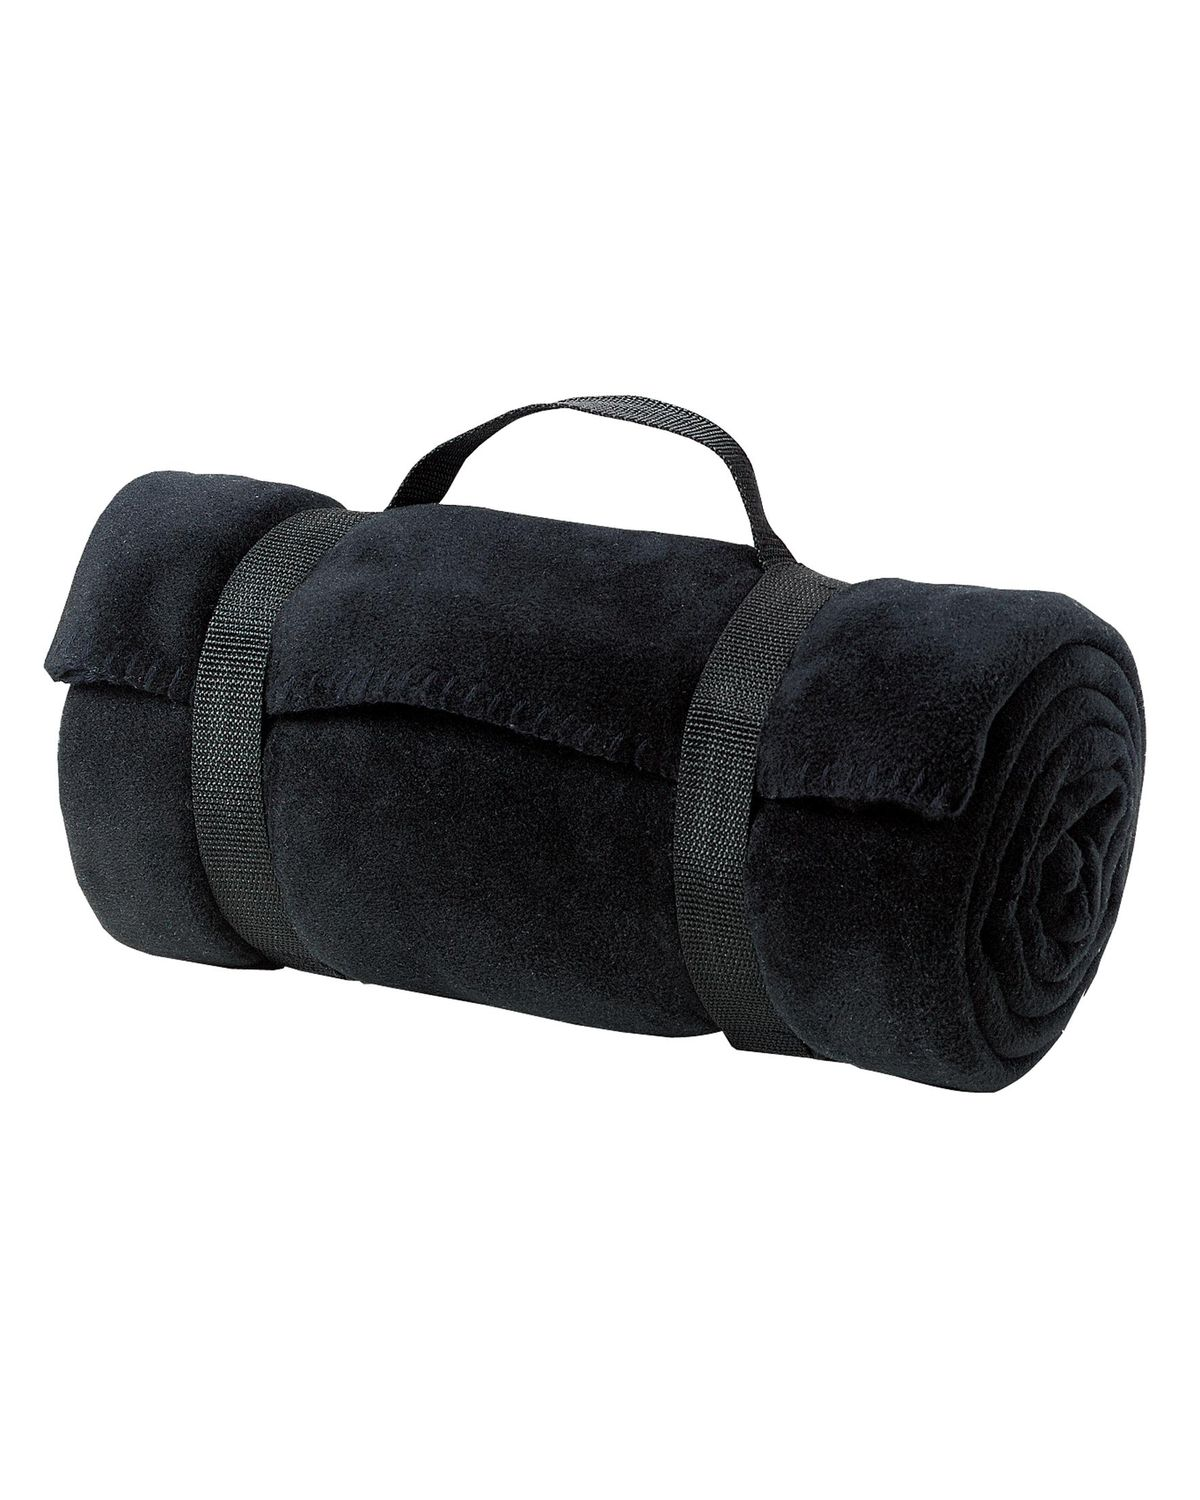 'Port Authority BP10 Value Fleece Blanket with Strap'